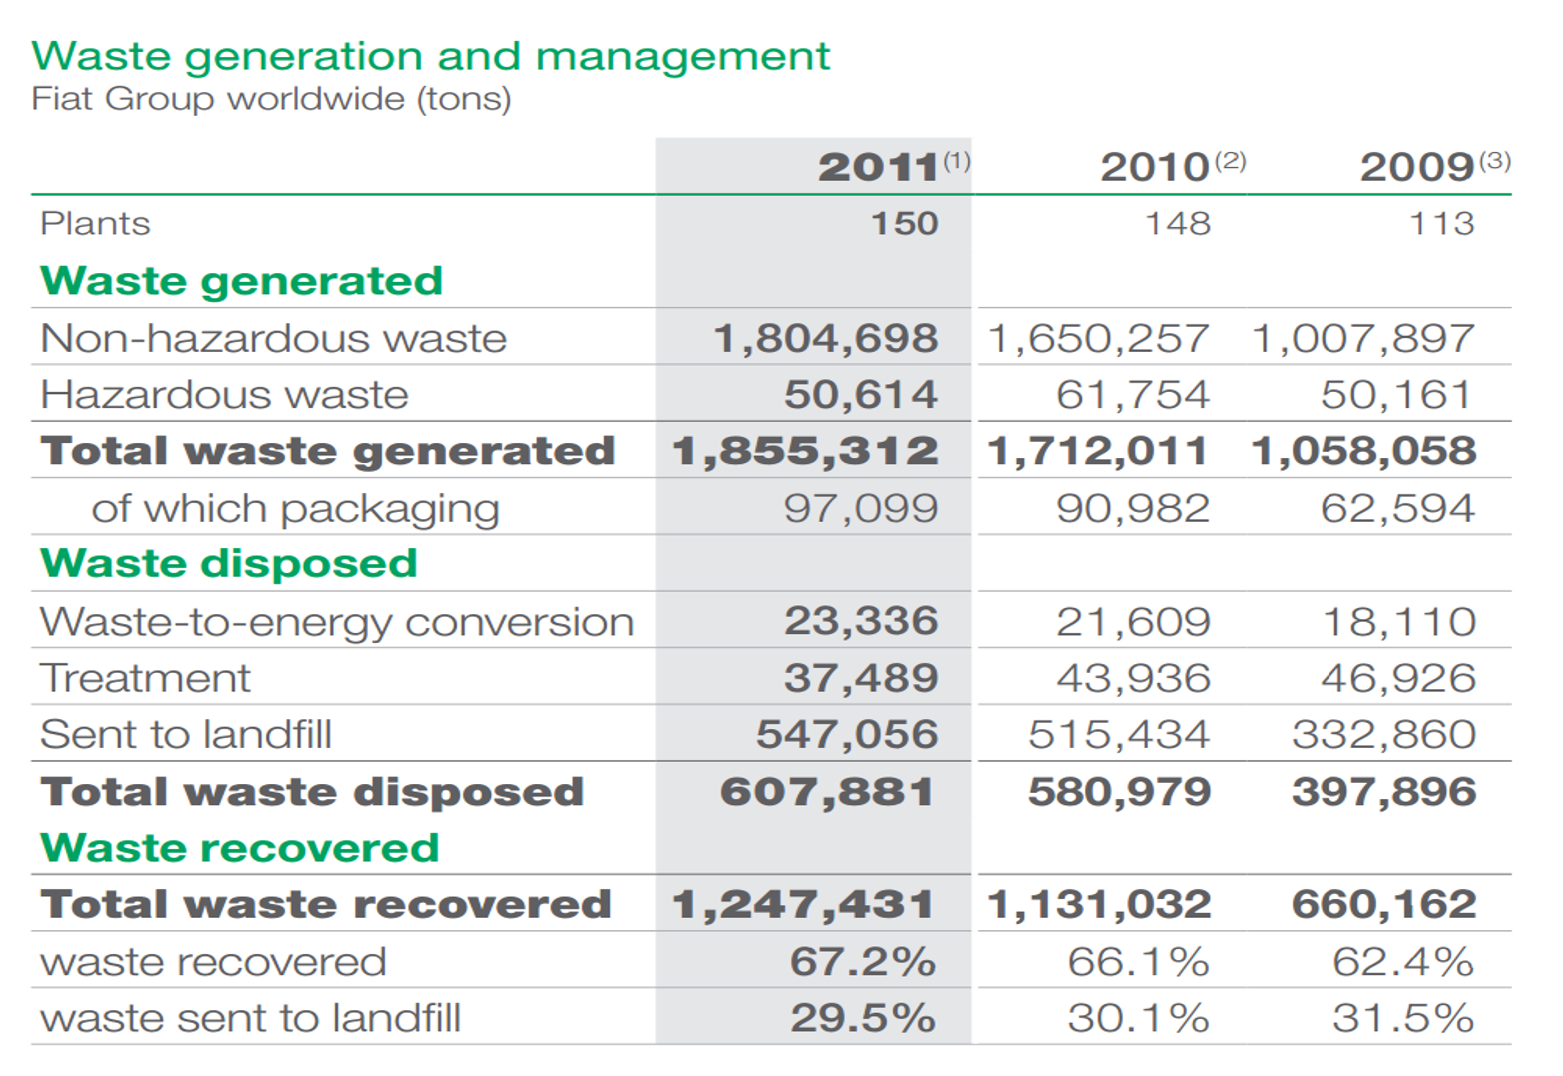 Waste Generation and Management (Fiat Group Worldwide (tons). See Text Version below for more details.